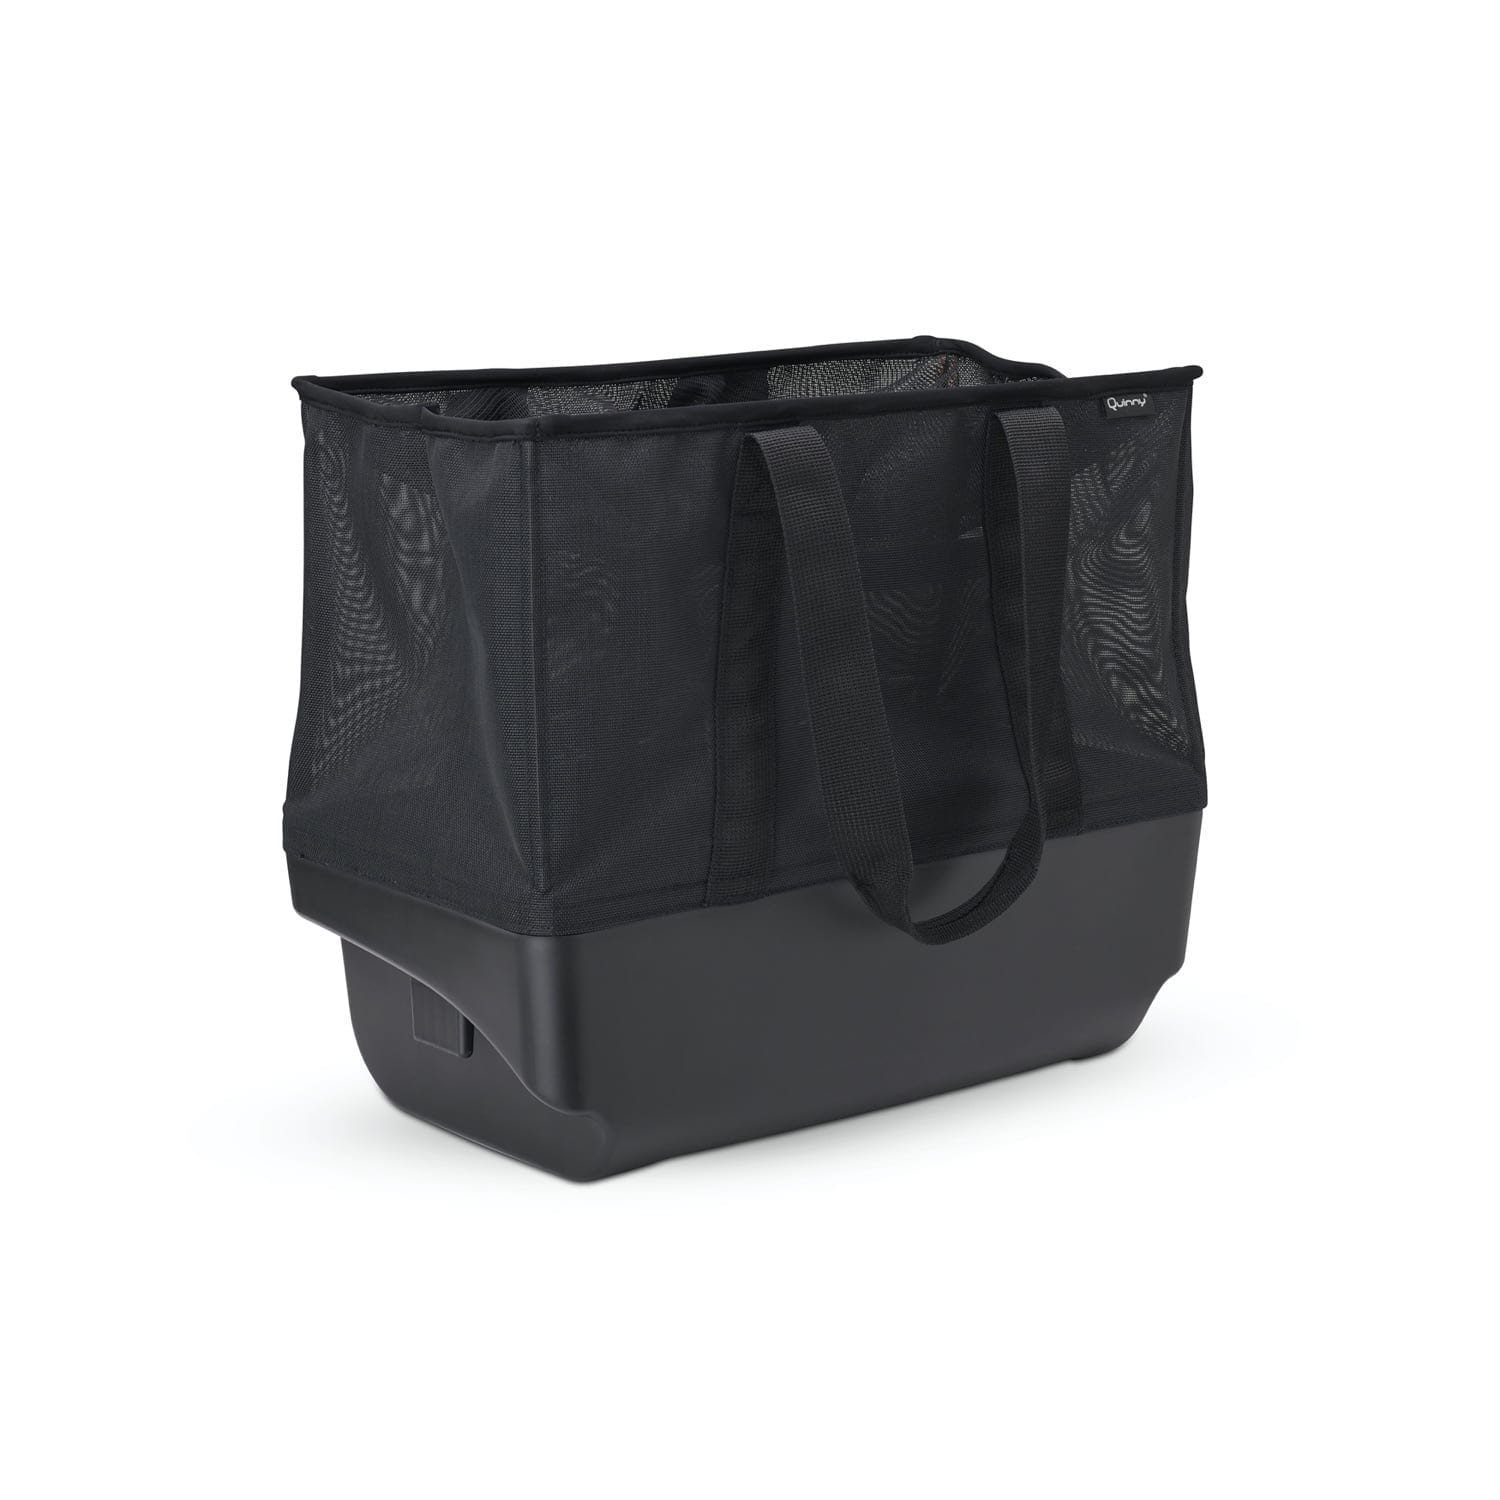 Quinny Hubb XXL Shopping Basket product image